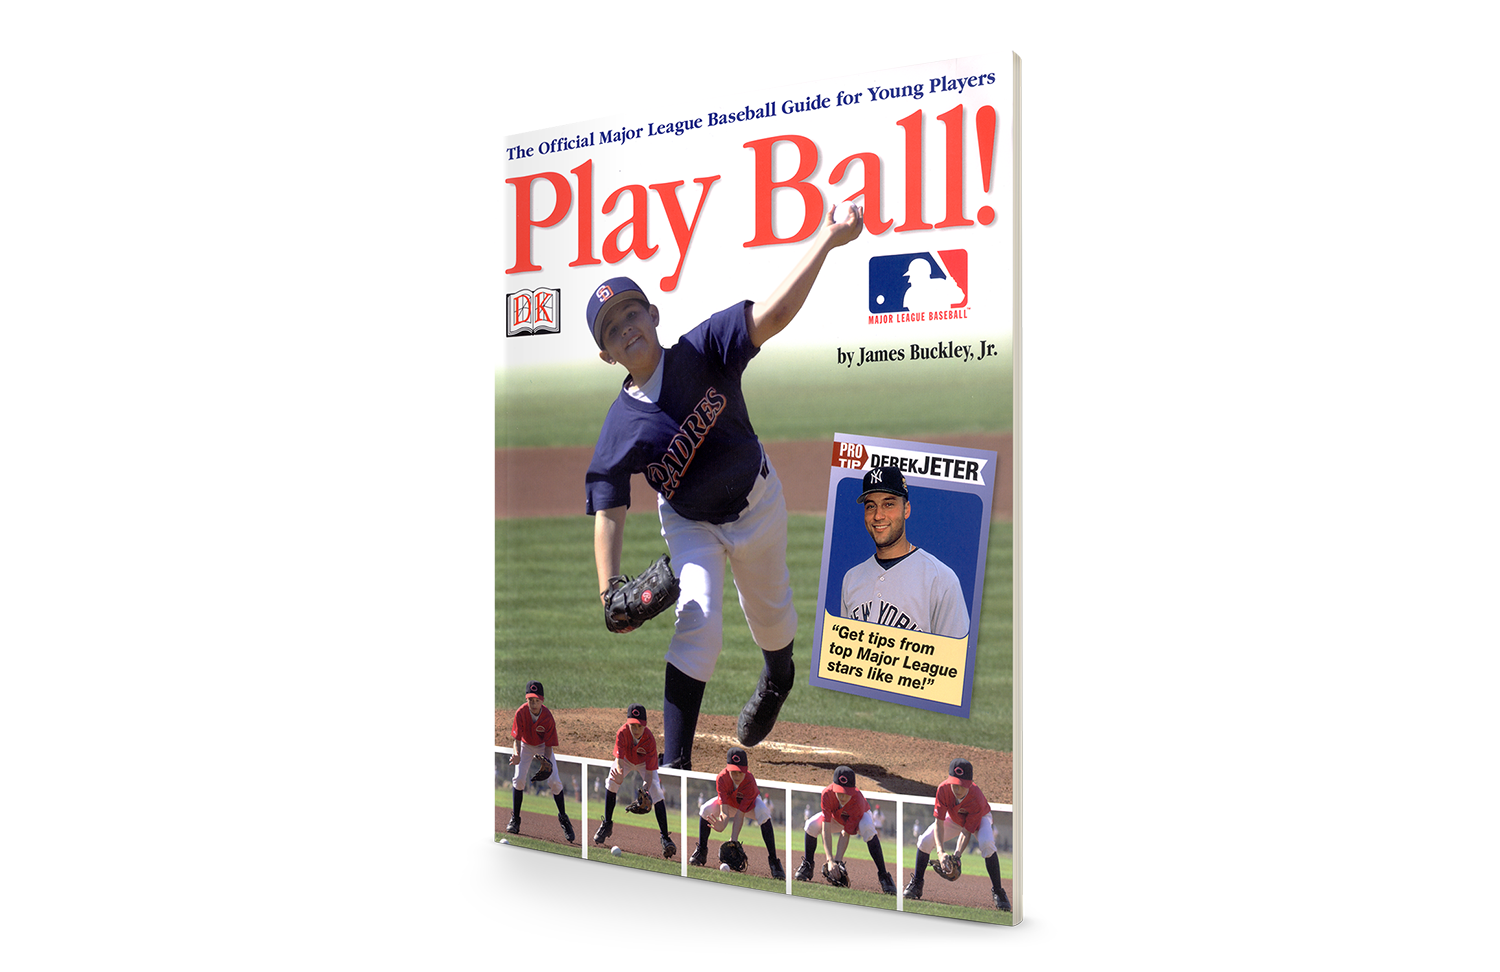 play-ball-cover2.png